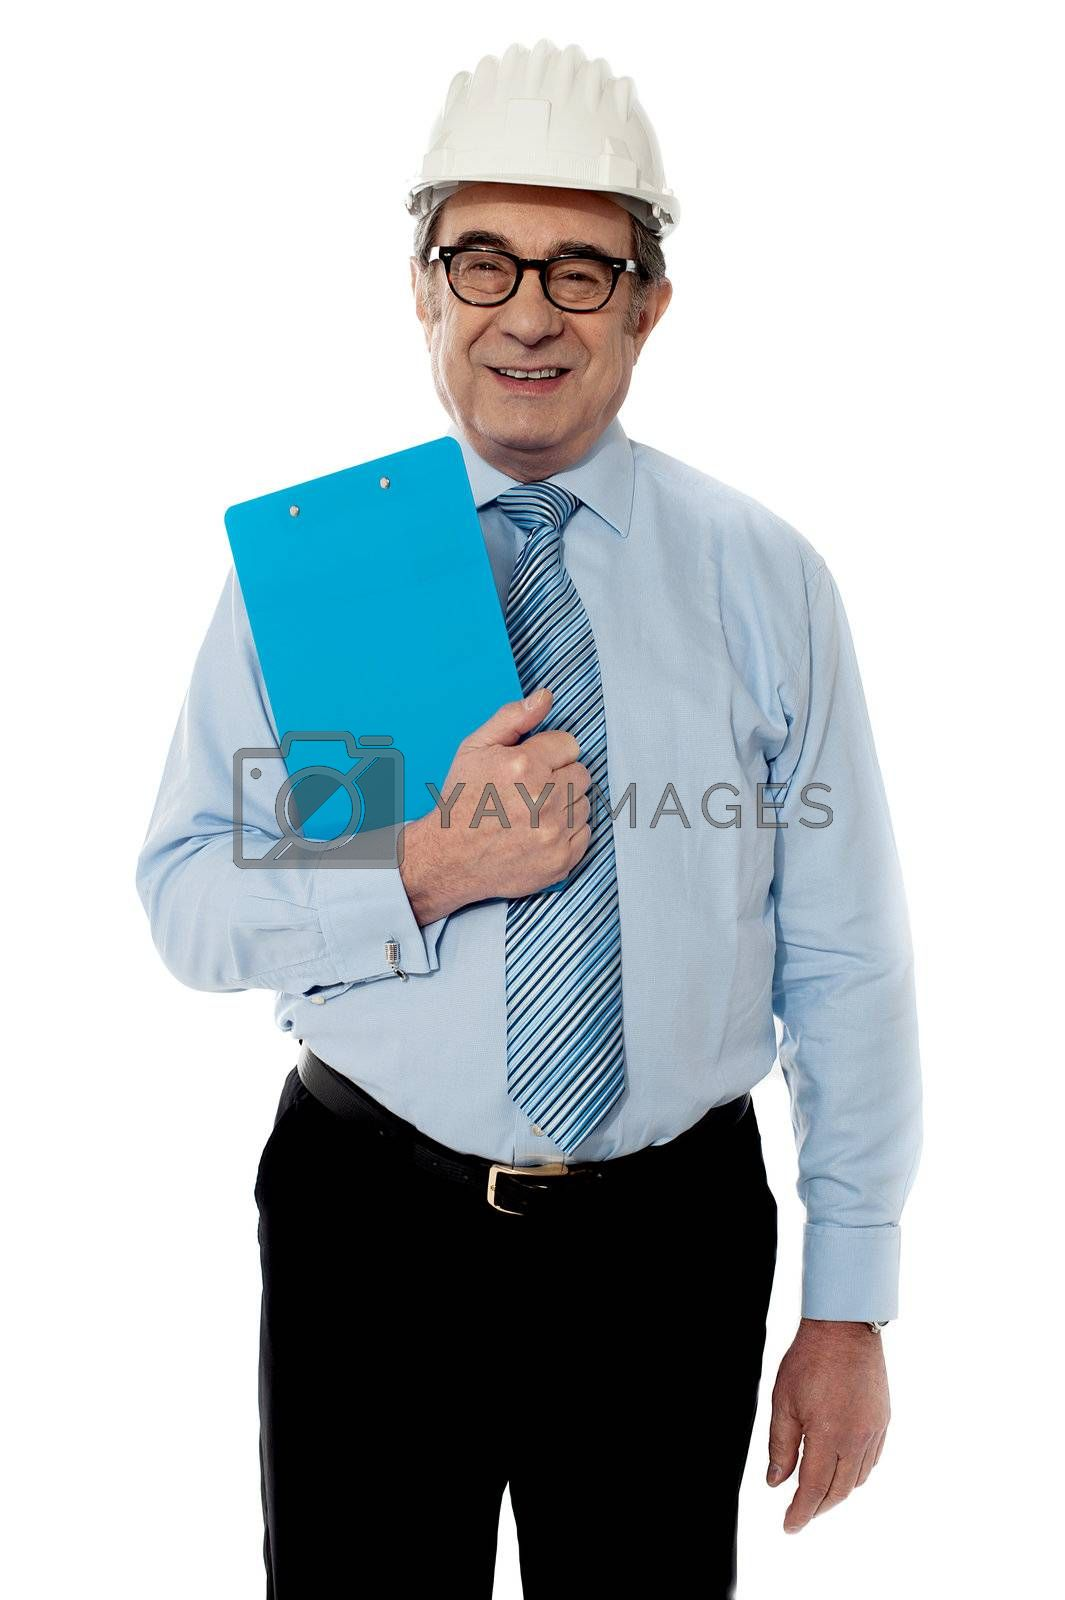 Smiling architect posing in front of camera wearing white hardhat with black trouser